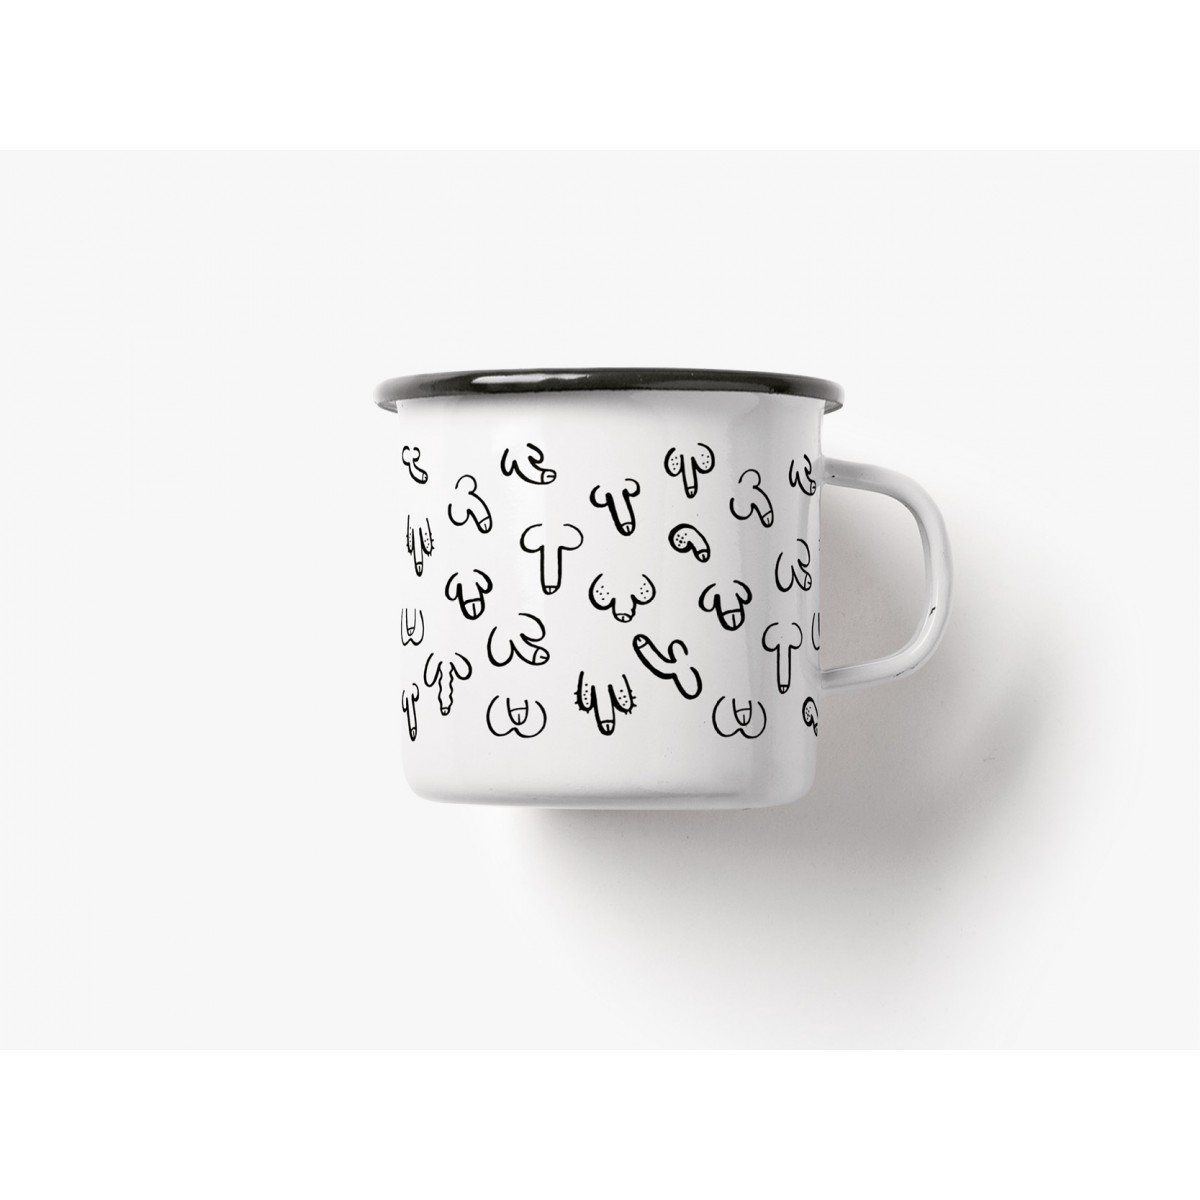 "typealive / Emaillebecher Tasse / Set ""Mr & Mrs"""